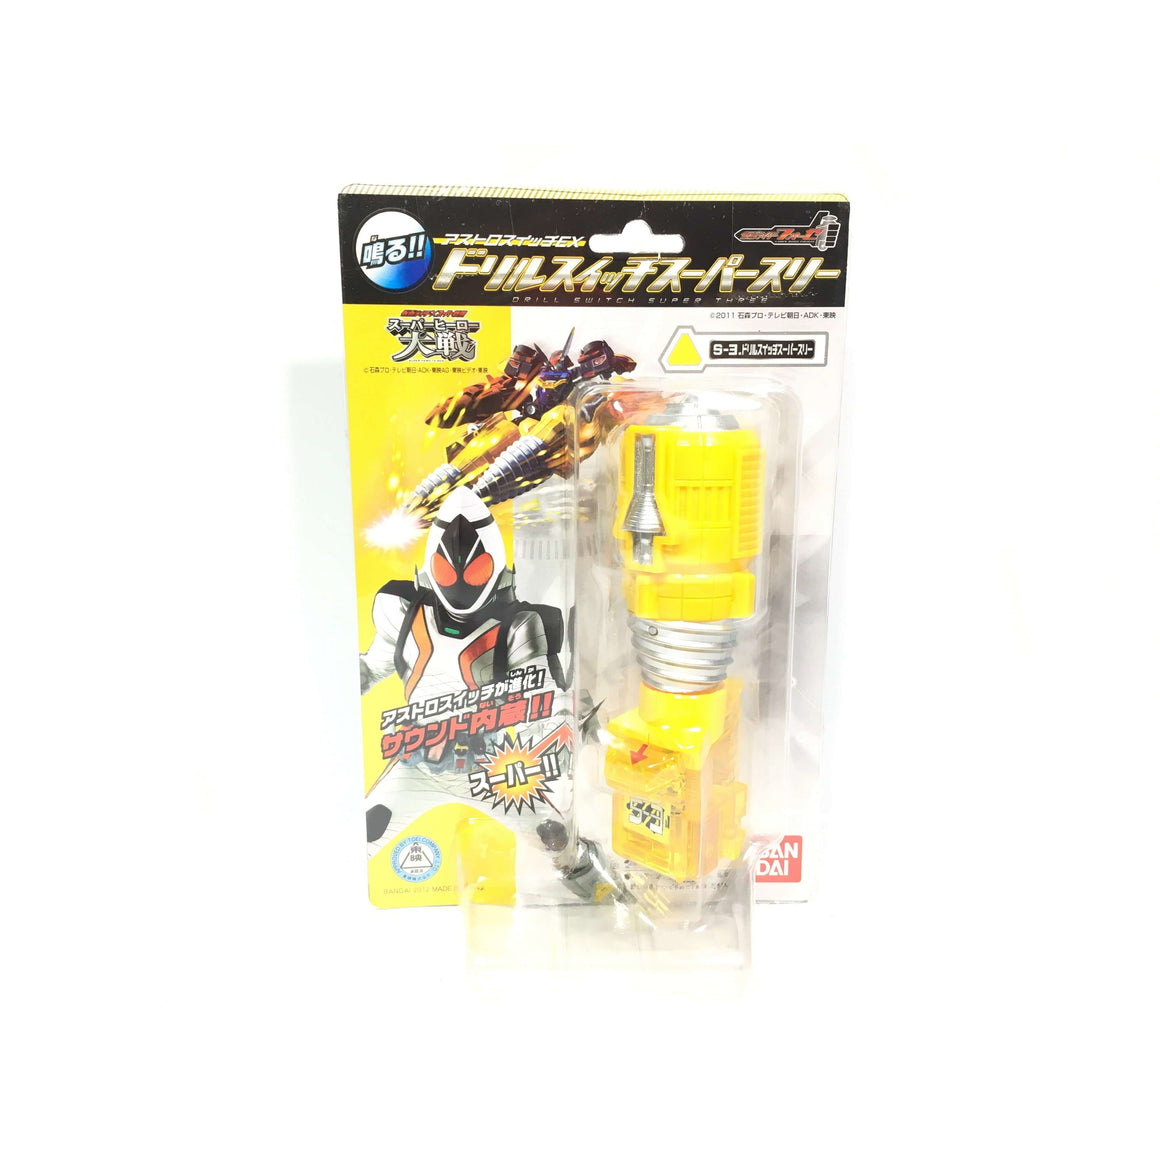 CSTOYS INTERNATIONAL:[BOXED] Kamen Rider Fourze: Astro Switch EX Drill Switch Super Three